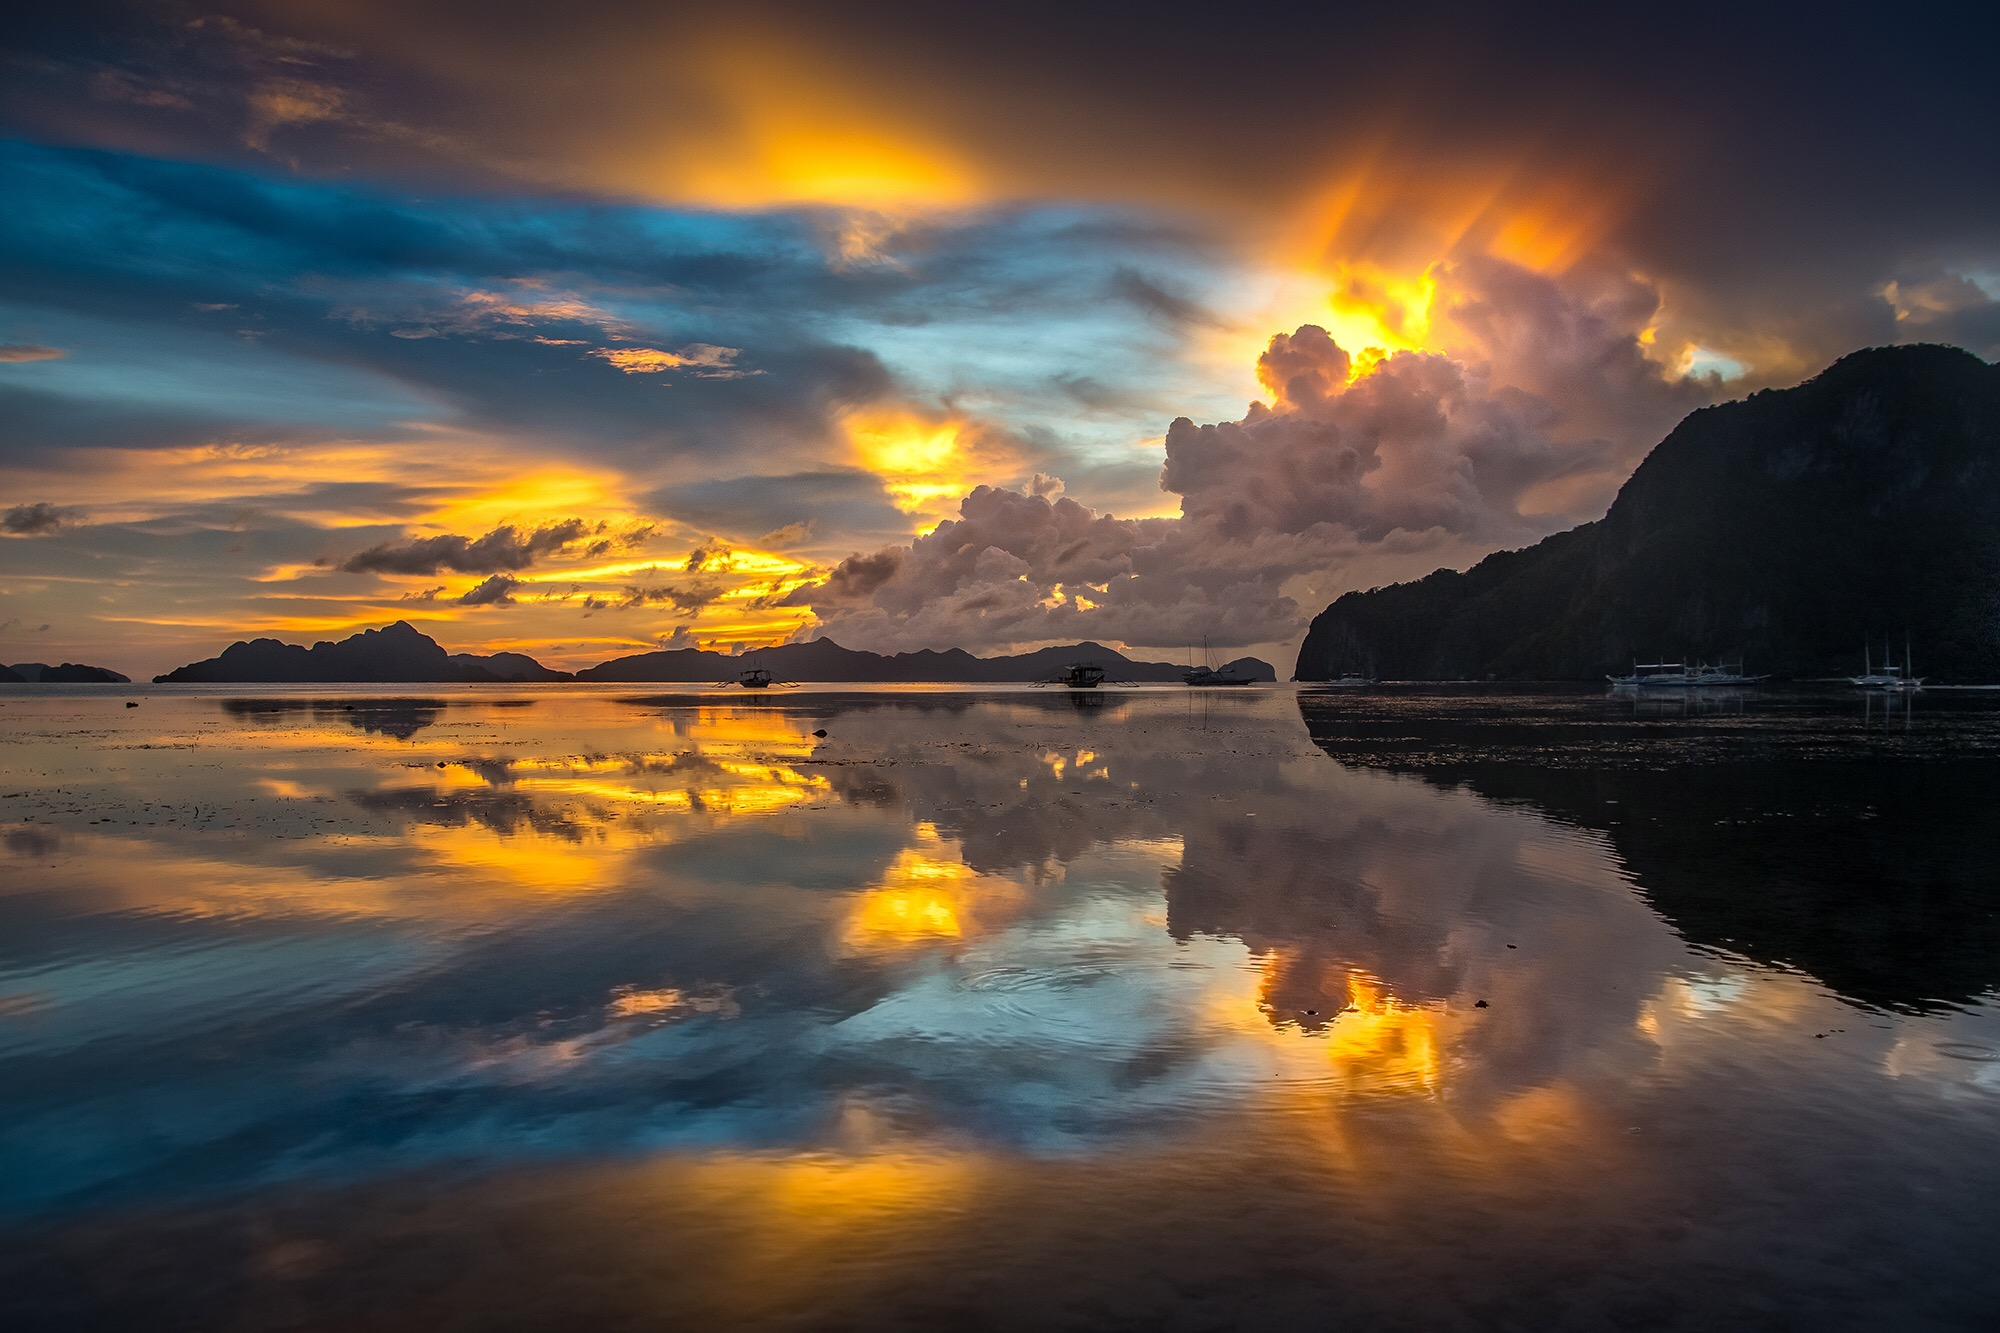 Crazy sunset in El Nido